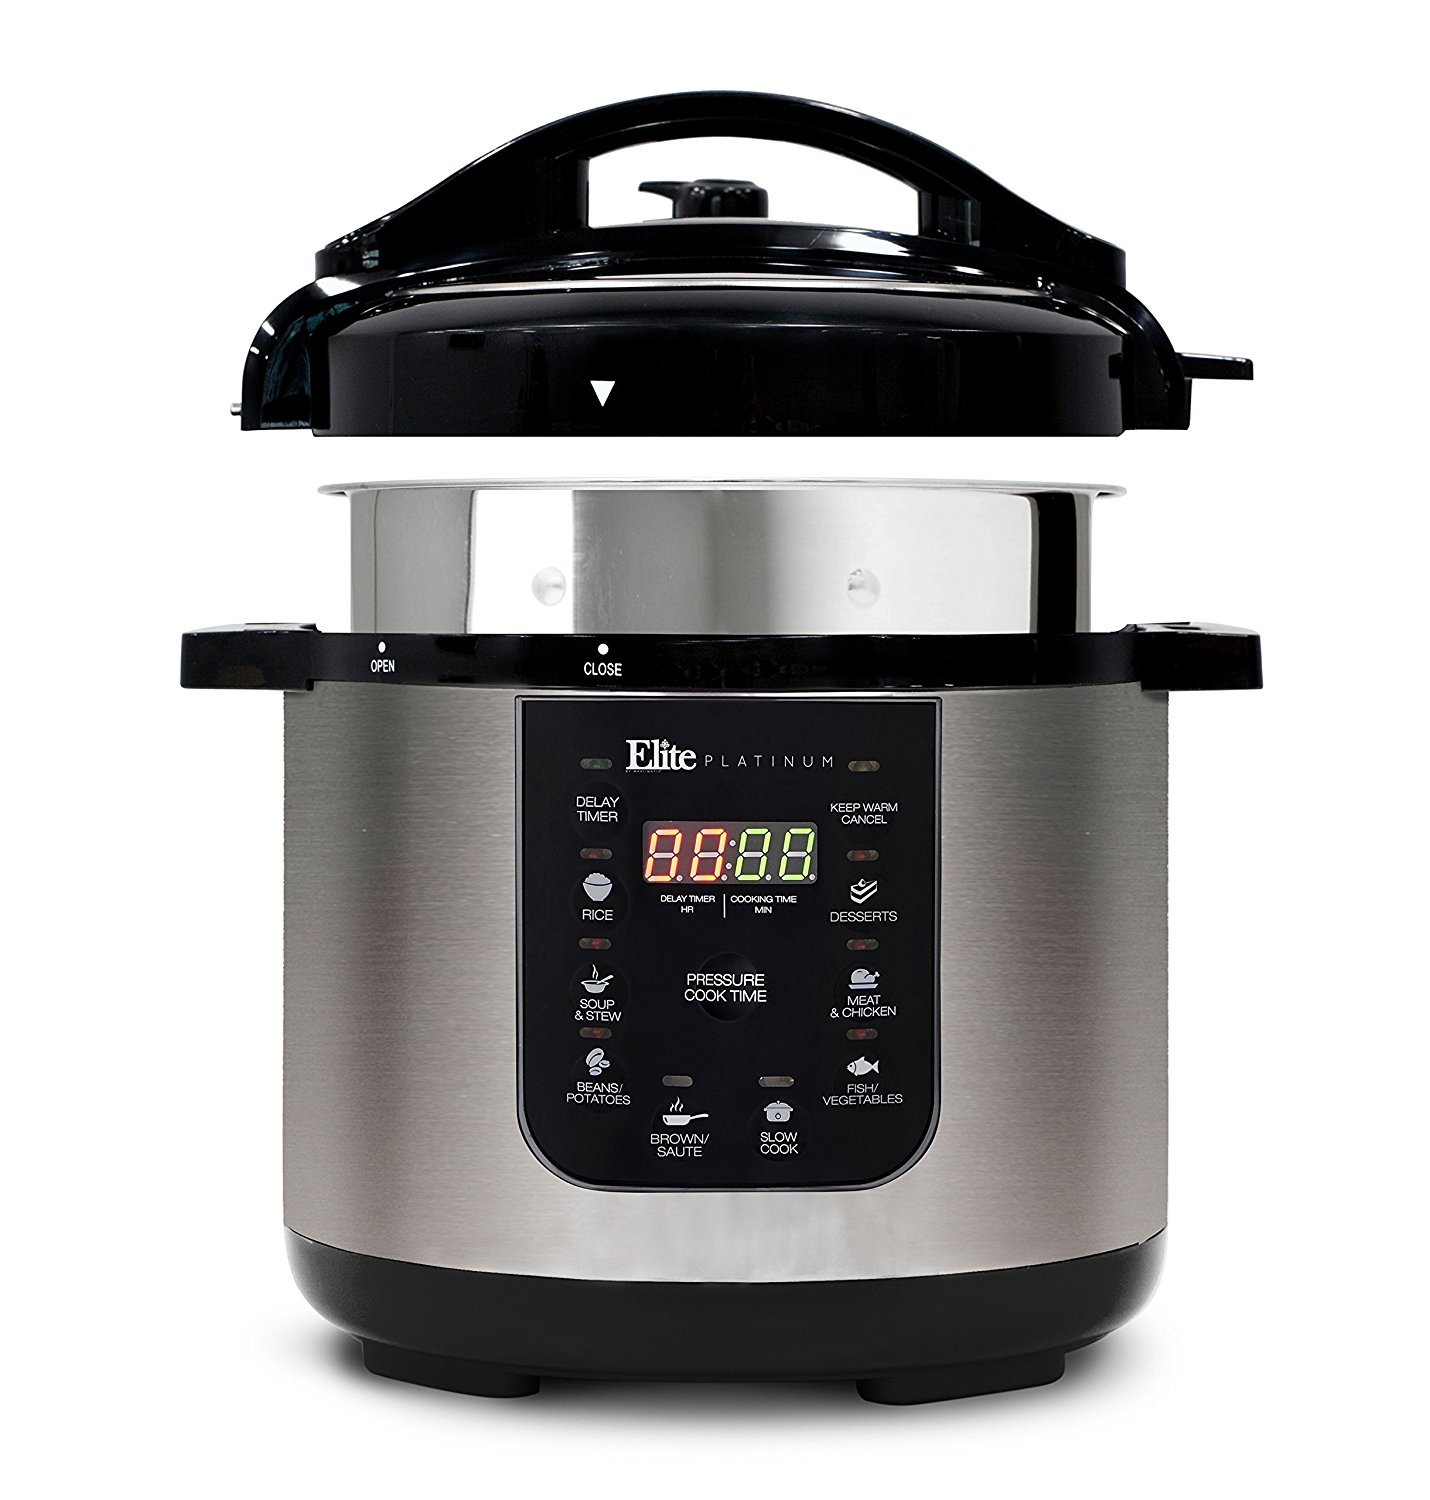 Elite Platinum EPC-686 Electric Pressure Cooker – 9-in-1 with 6 Qt. Tri-ply Stainless Steel Inner Pot, Slow Cooker, Sauté